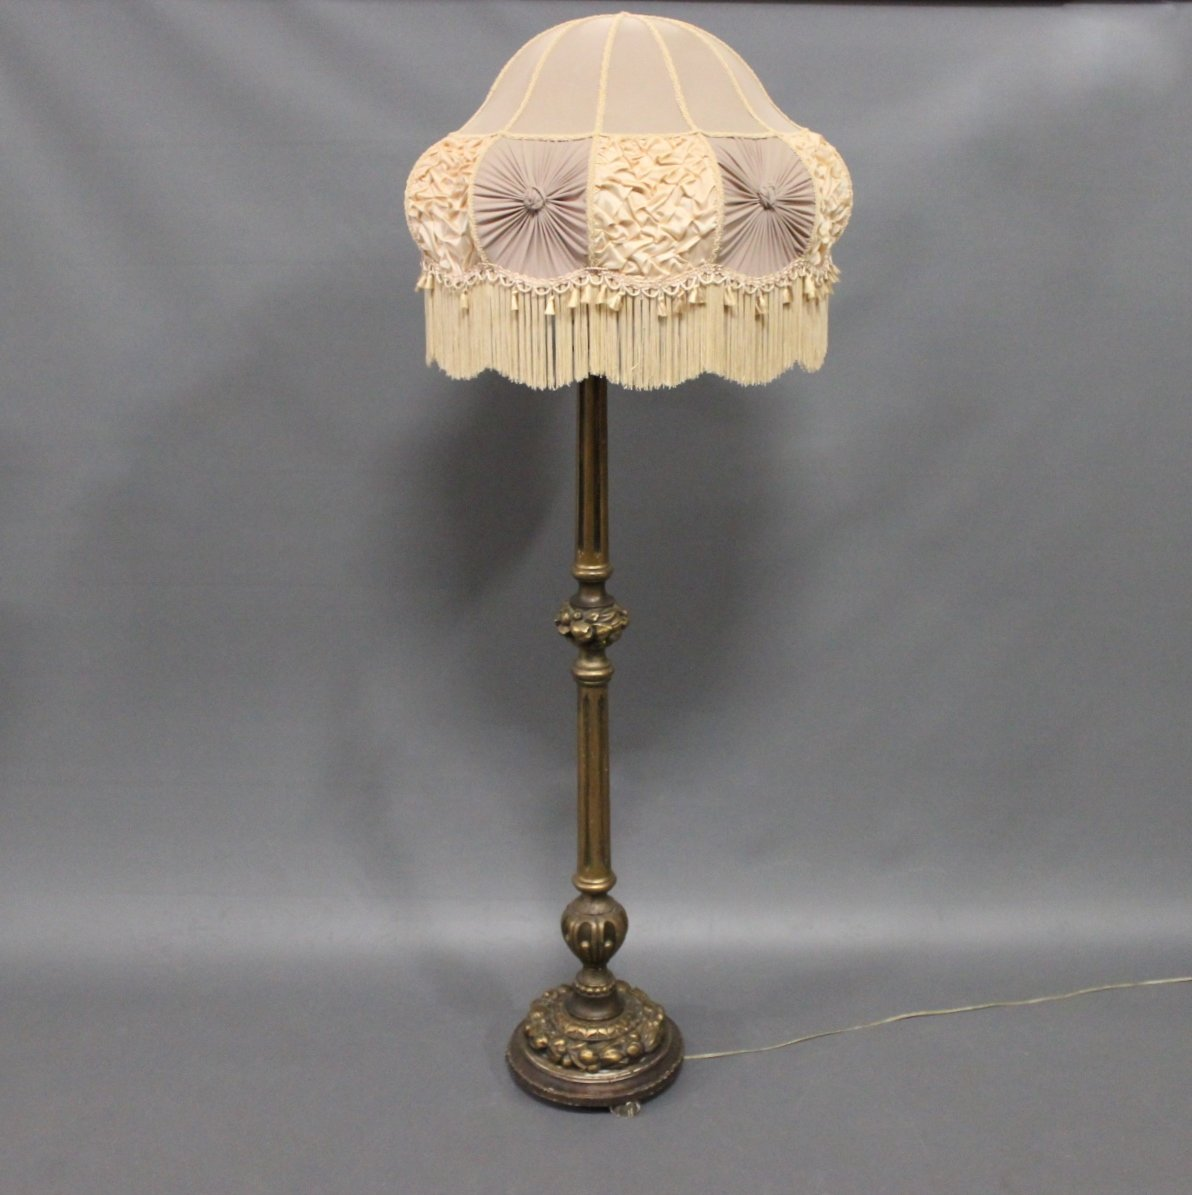 Antique floor lamp in gilded wood 1920s for sale at pamono antique floor lamp in gilded wood 1920s aloadofball Gallery